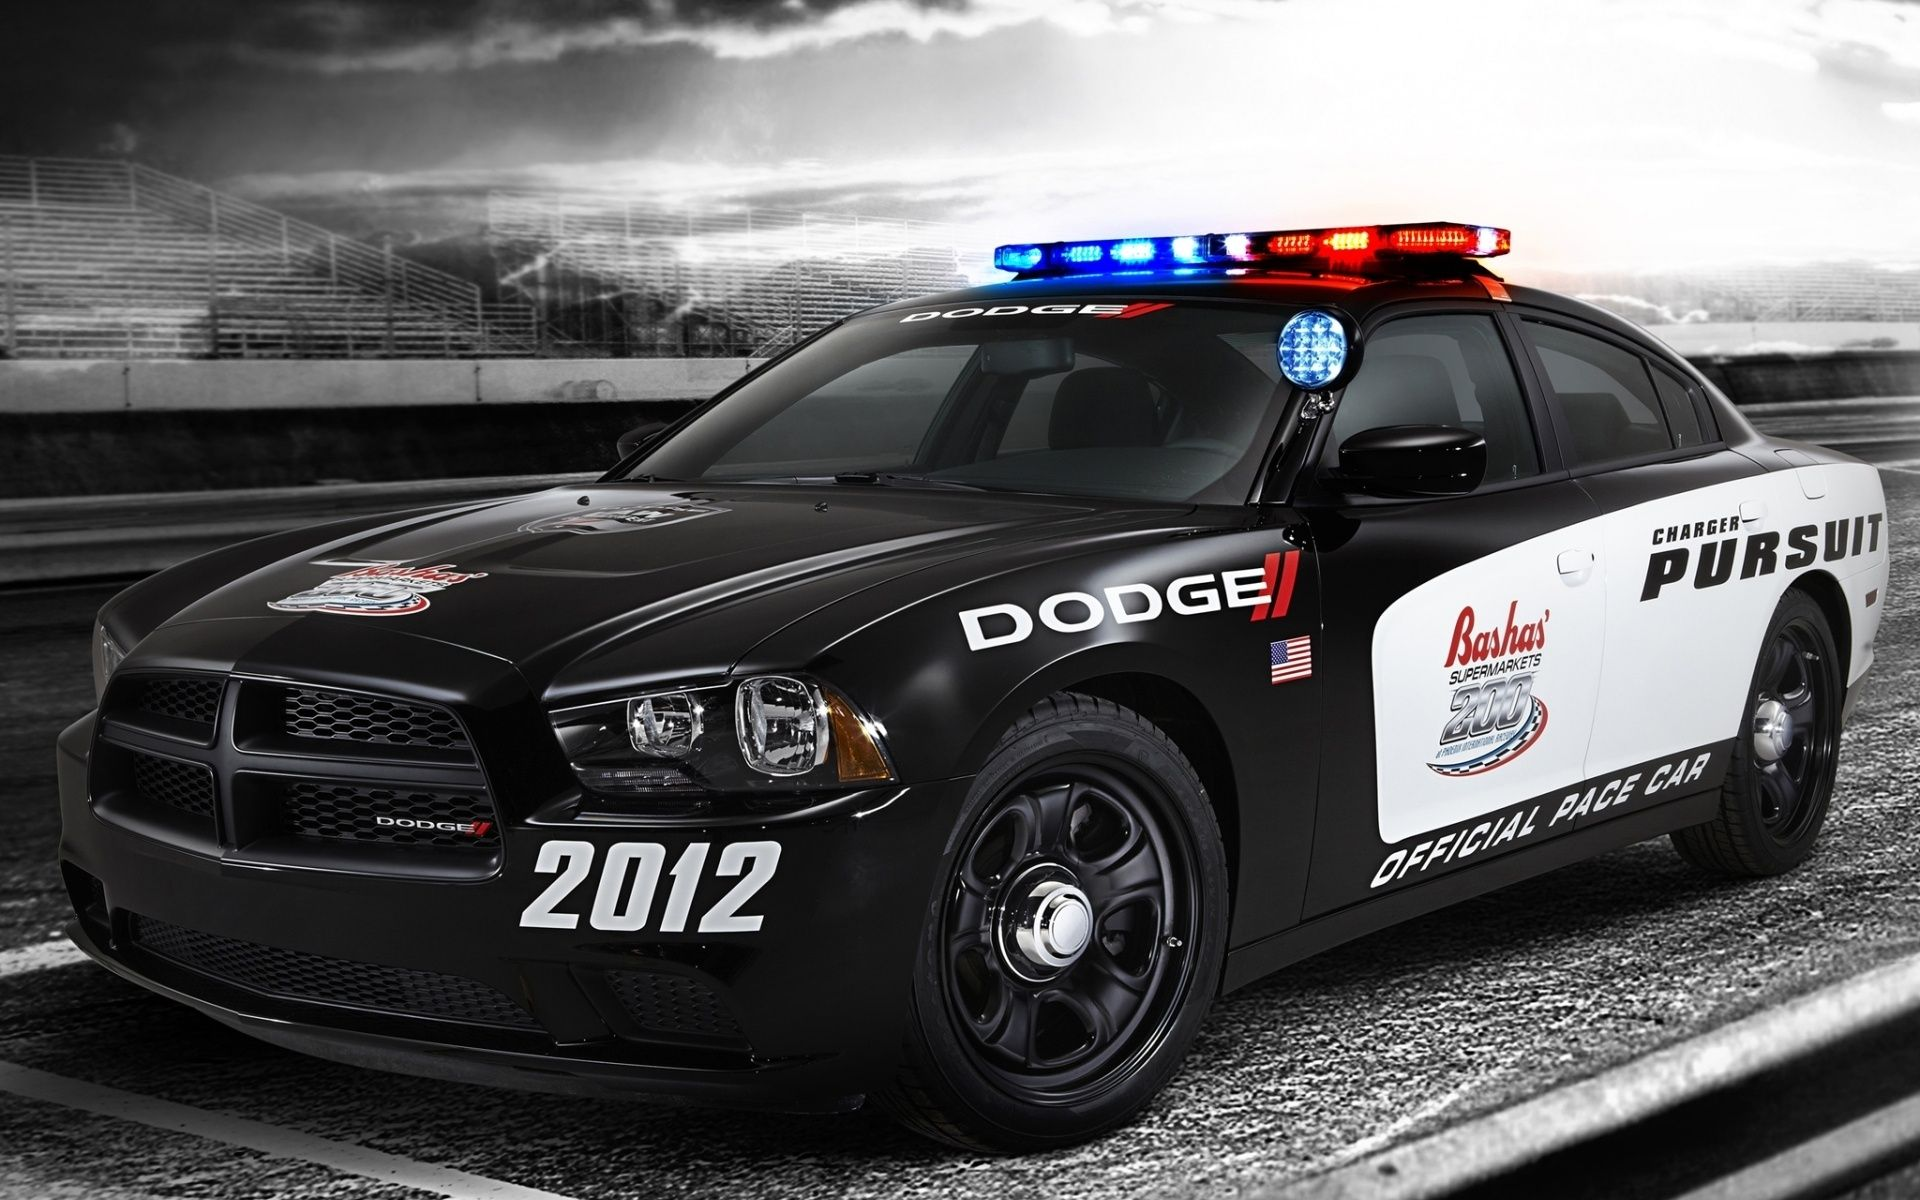 Best of police cars - Usa Dodge Charger Police Car